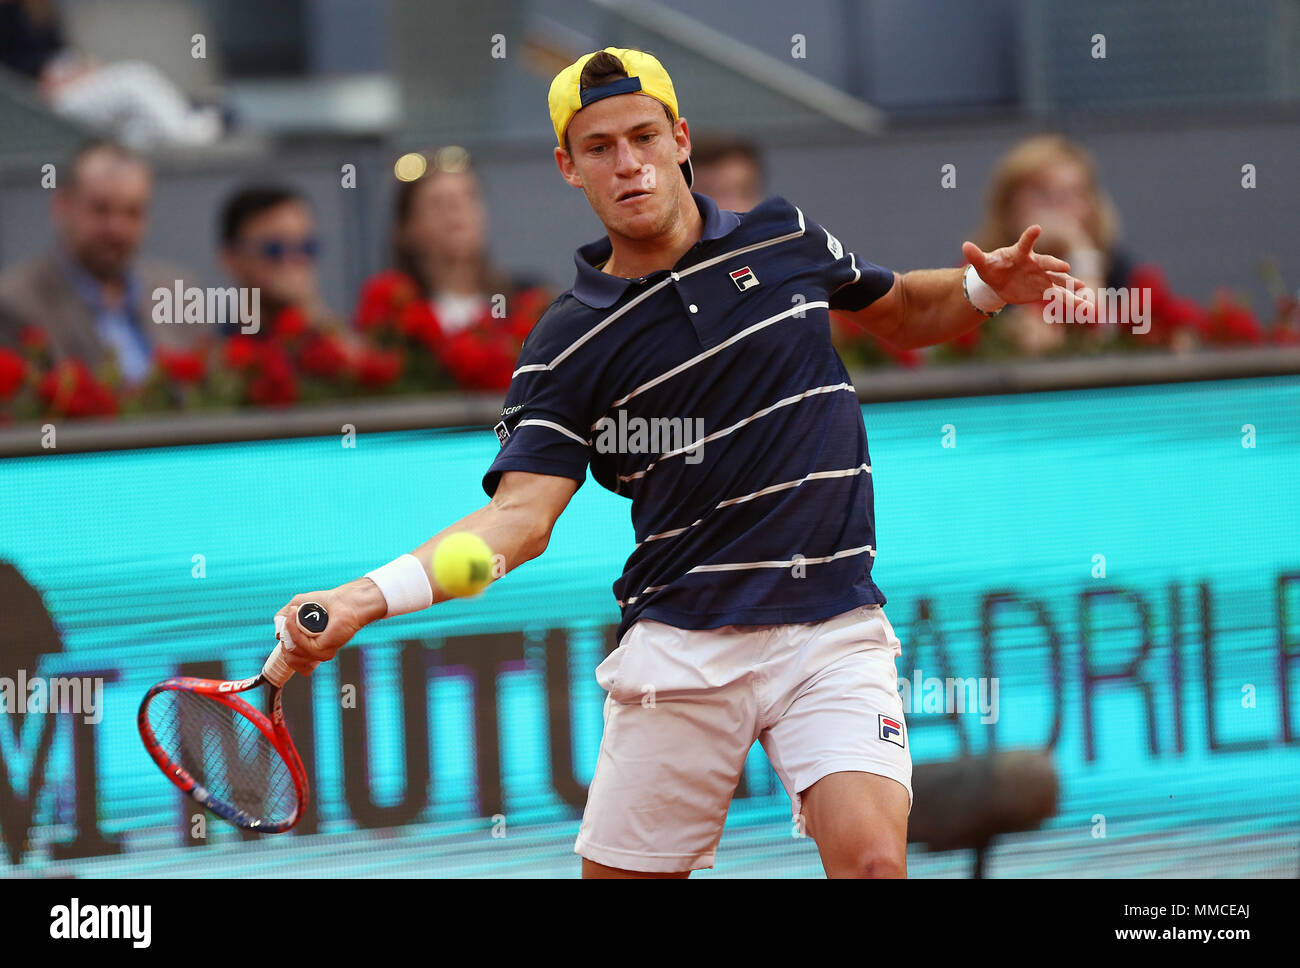 Diego Schwartzman Of Argentina Plays A Forehand Against Rafael Nadal Of Spain In Their Third Round Match During Day Six Of The Mutua Madrid Open Tennis Tournament At The Caja Magica Final